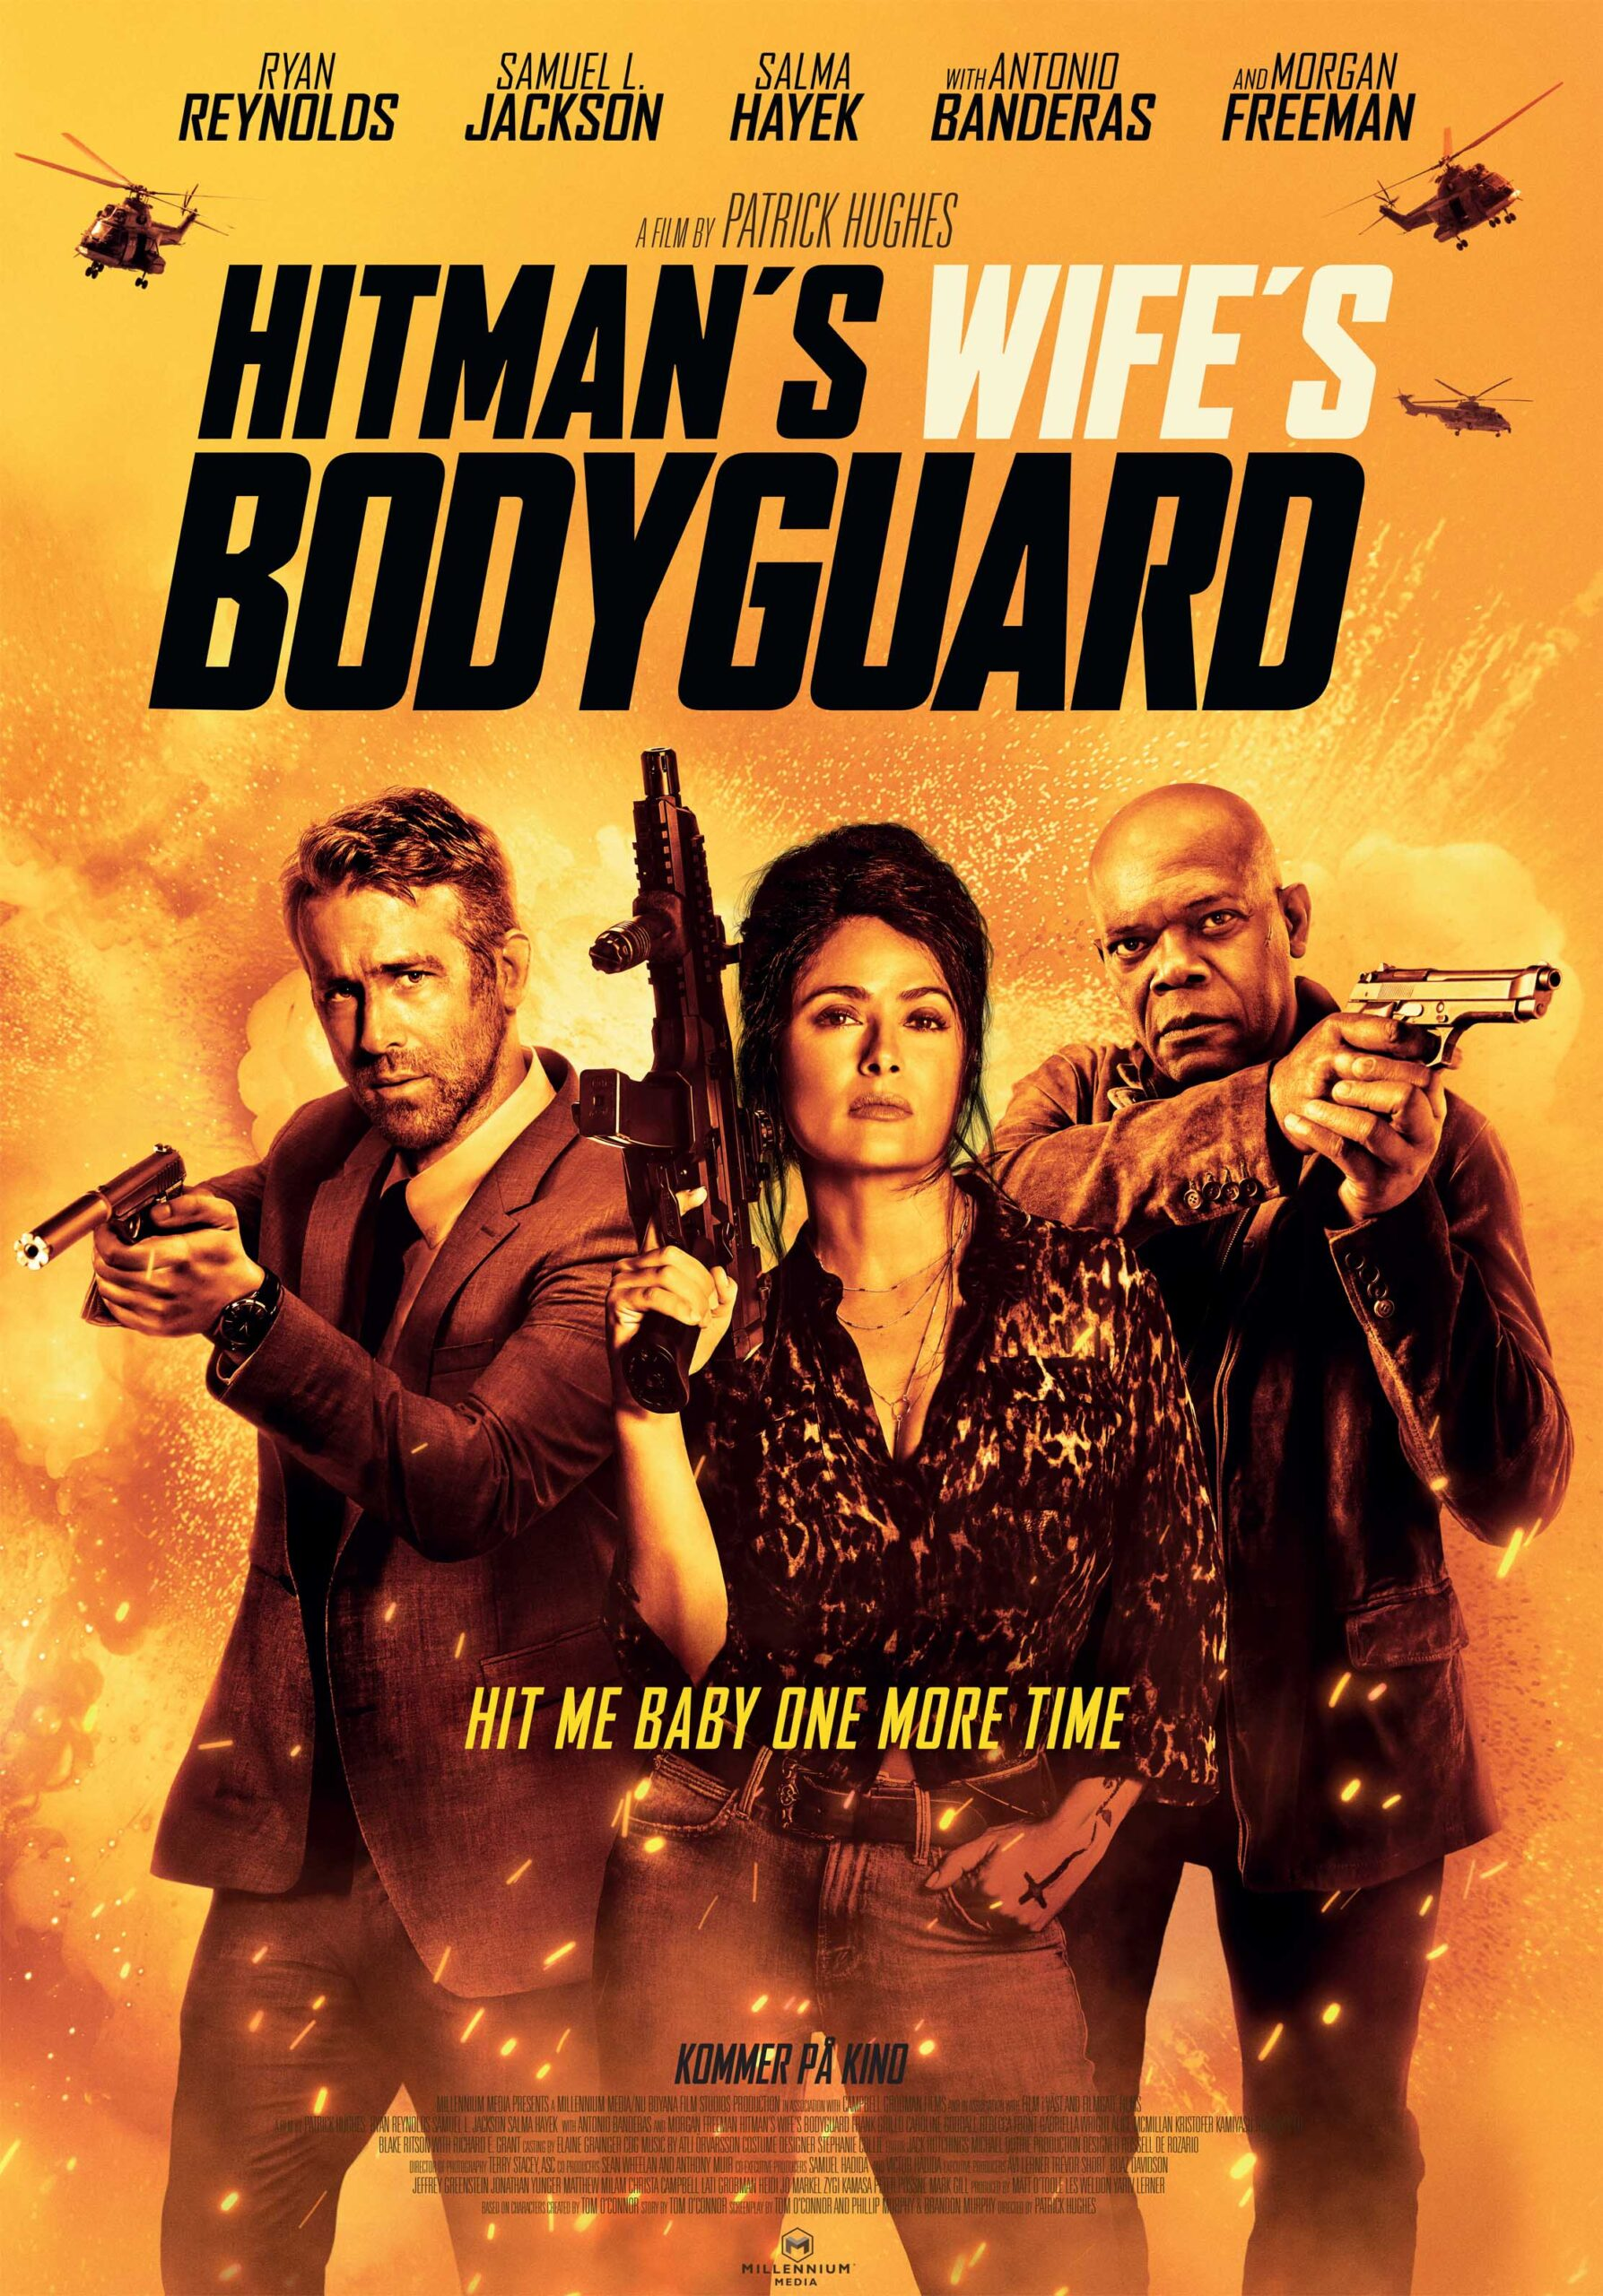 Hitman's Wife's Bodyguard (Another World Entertainment/Lionsgate)